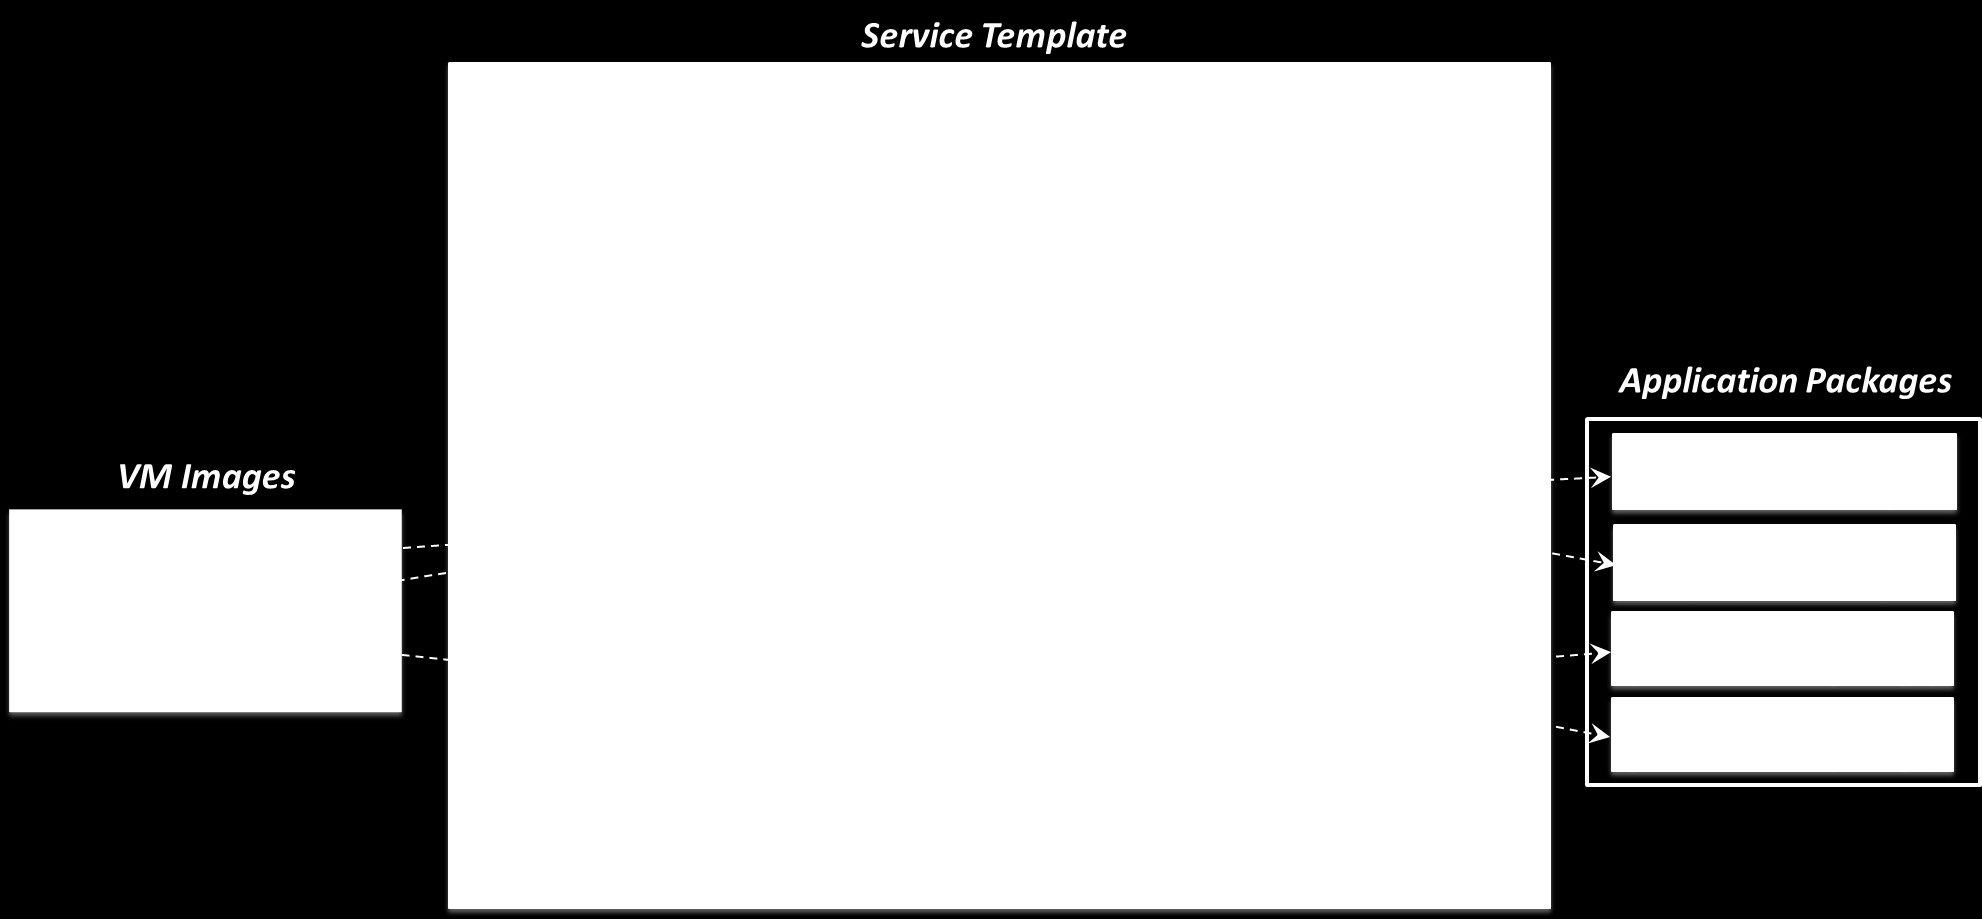 Figure 13: A service template can describe an entire three-tier application. Once again, the service template has a name Vacation Application and a release number.